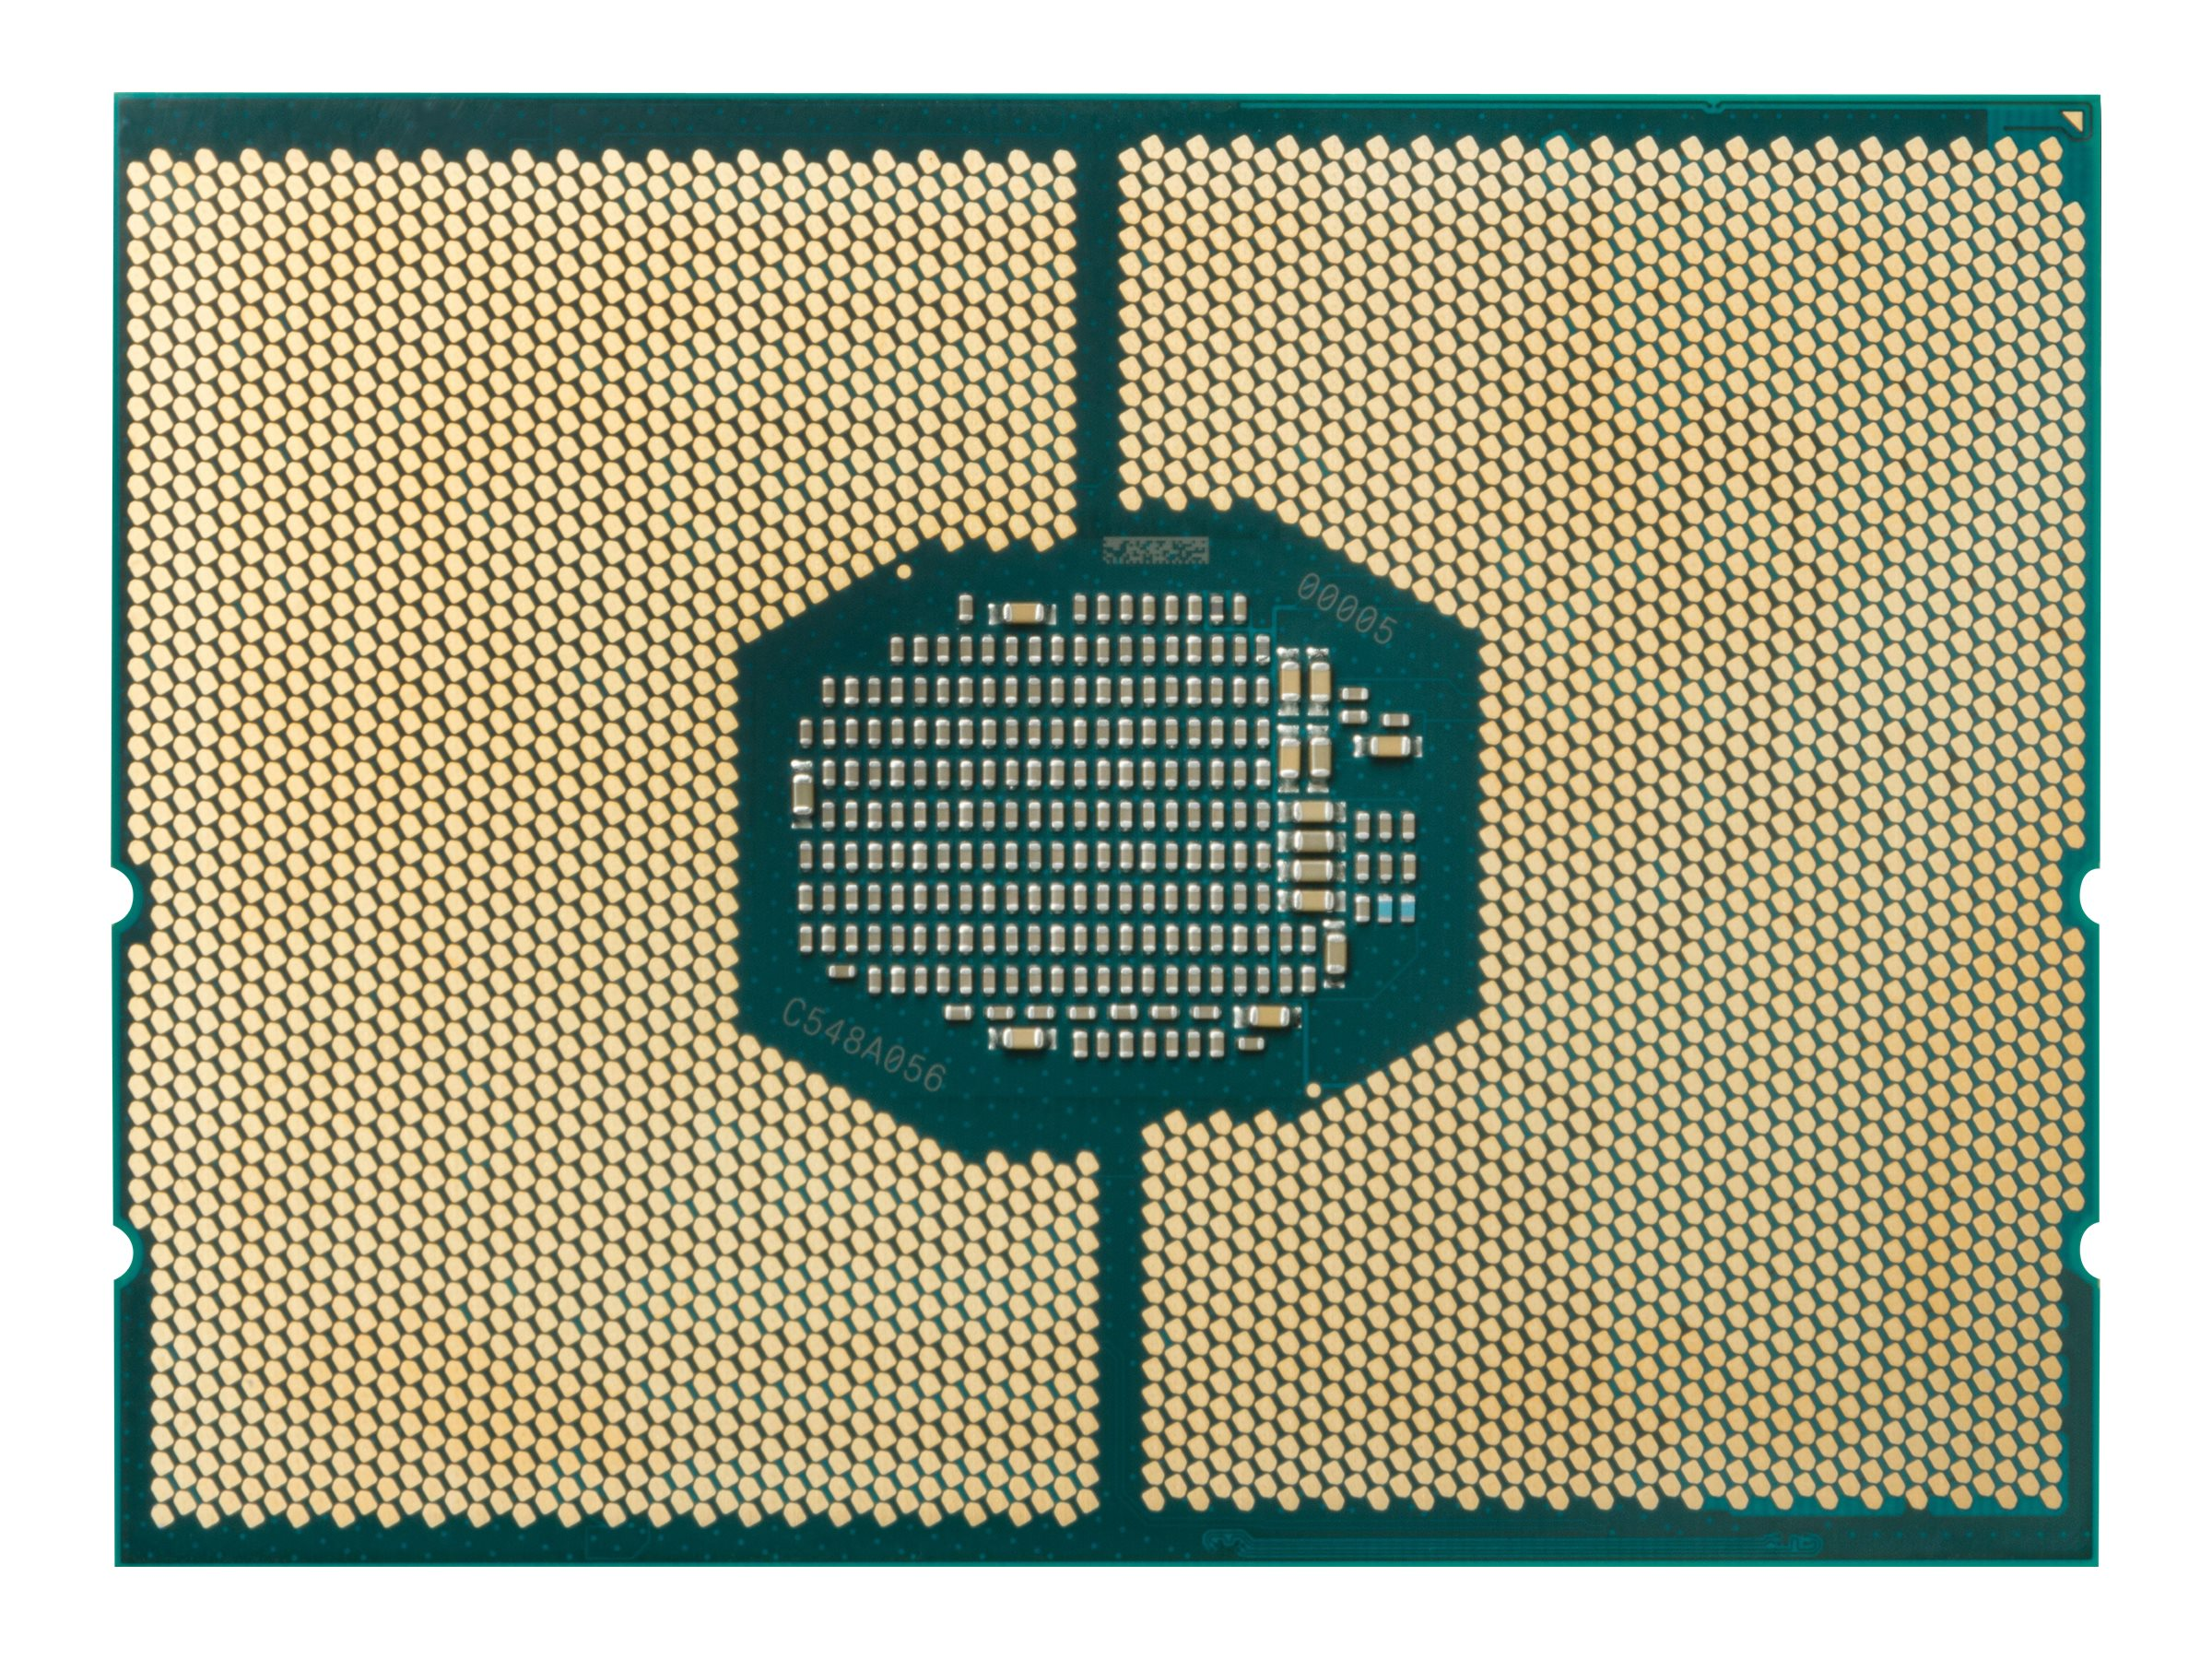 Intel Xeon Platinum 8280 / 2.7 GHz processor